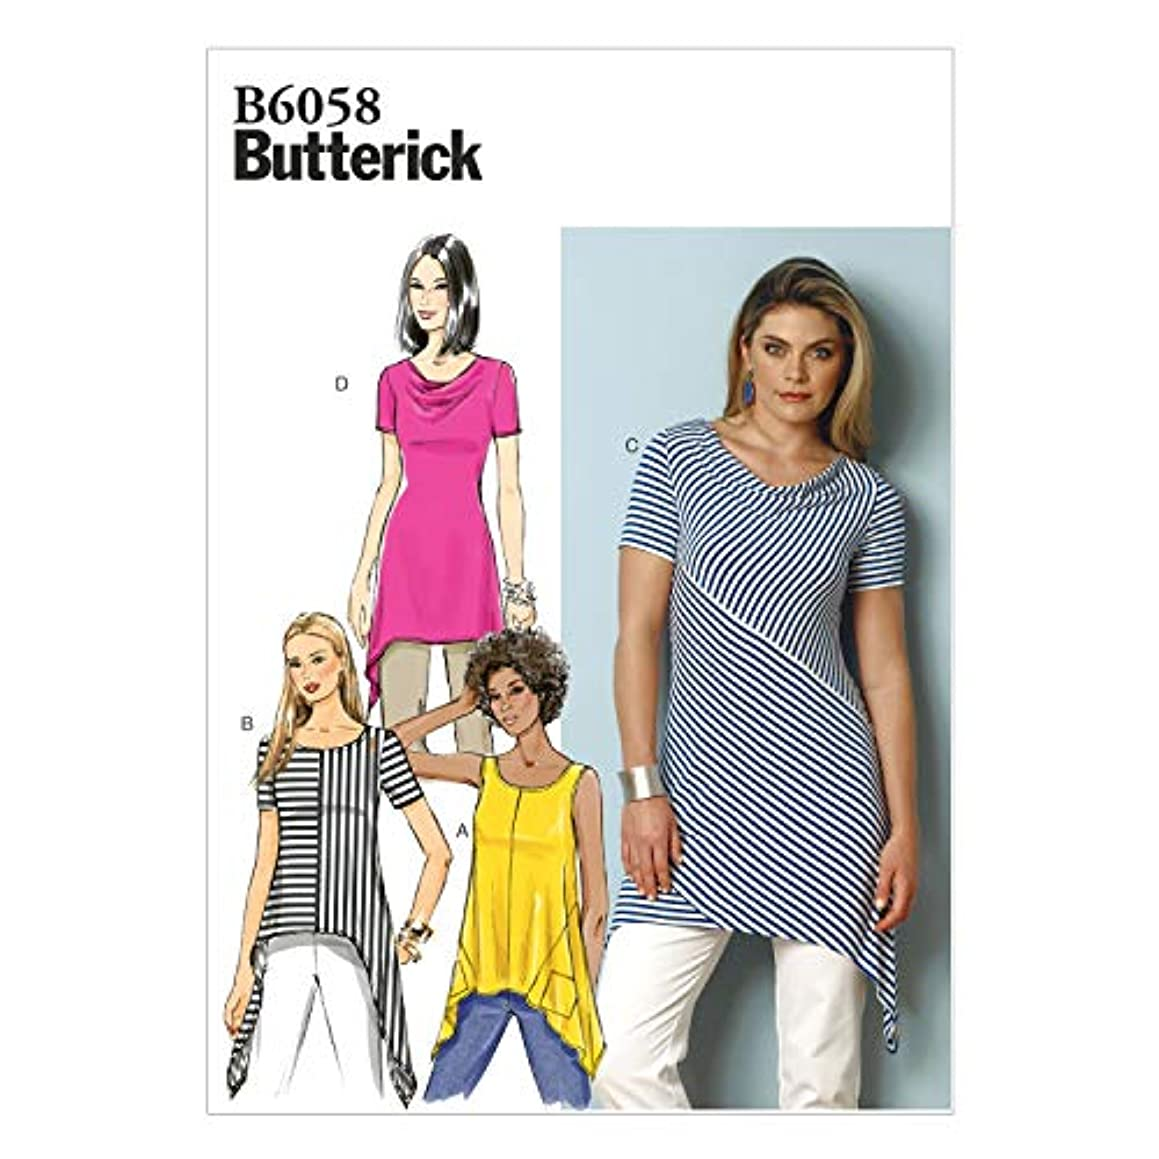 BUTTERICK PATTERNS B6058 Misses' Tunic Sewing Template, Size A5 (6-8-10-12-14)